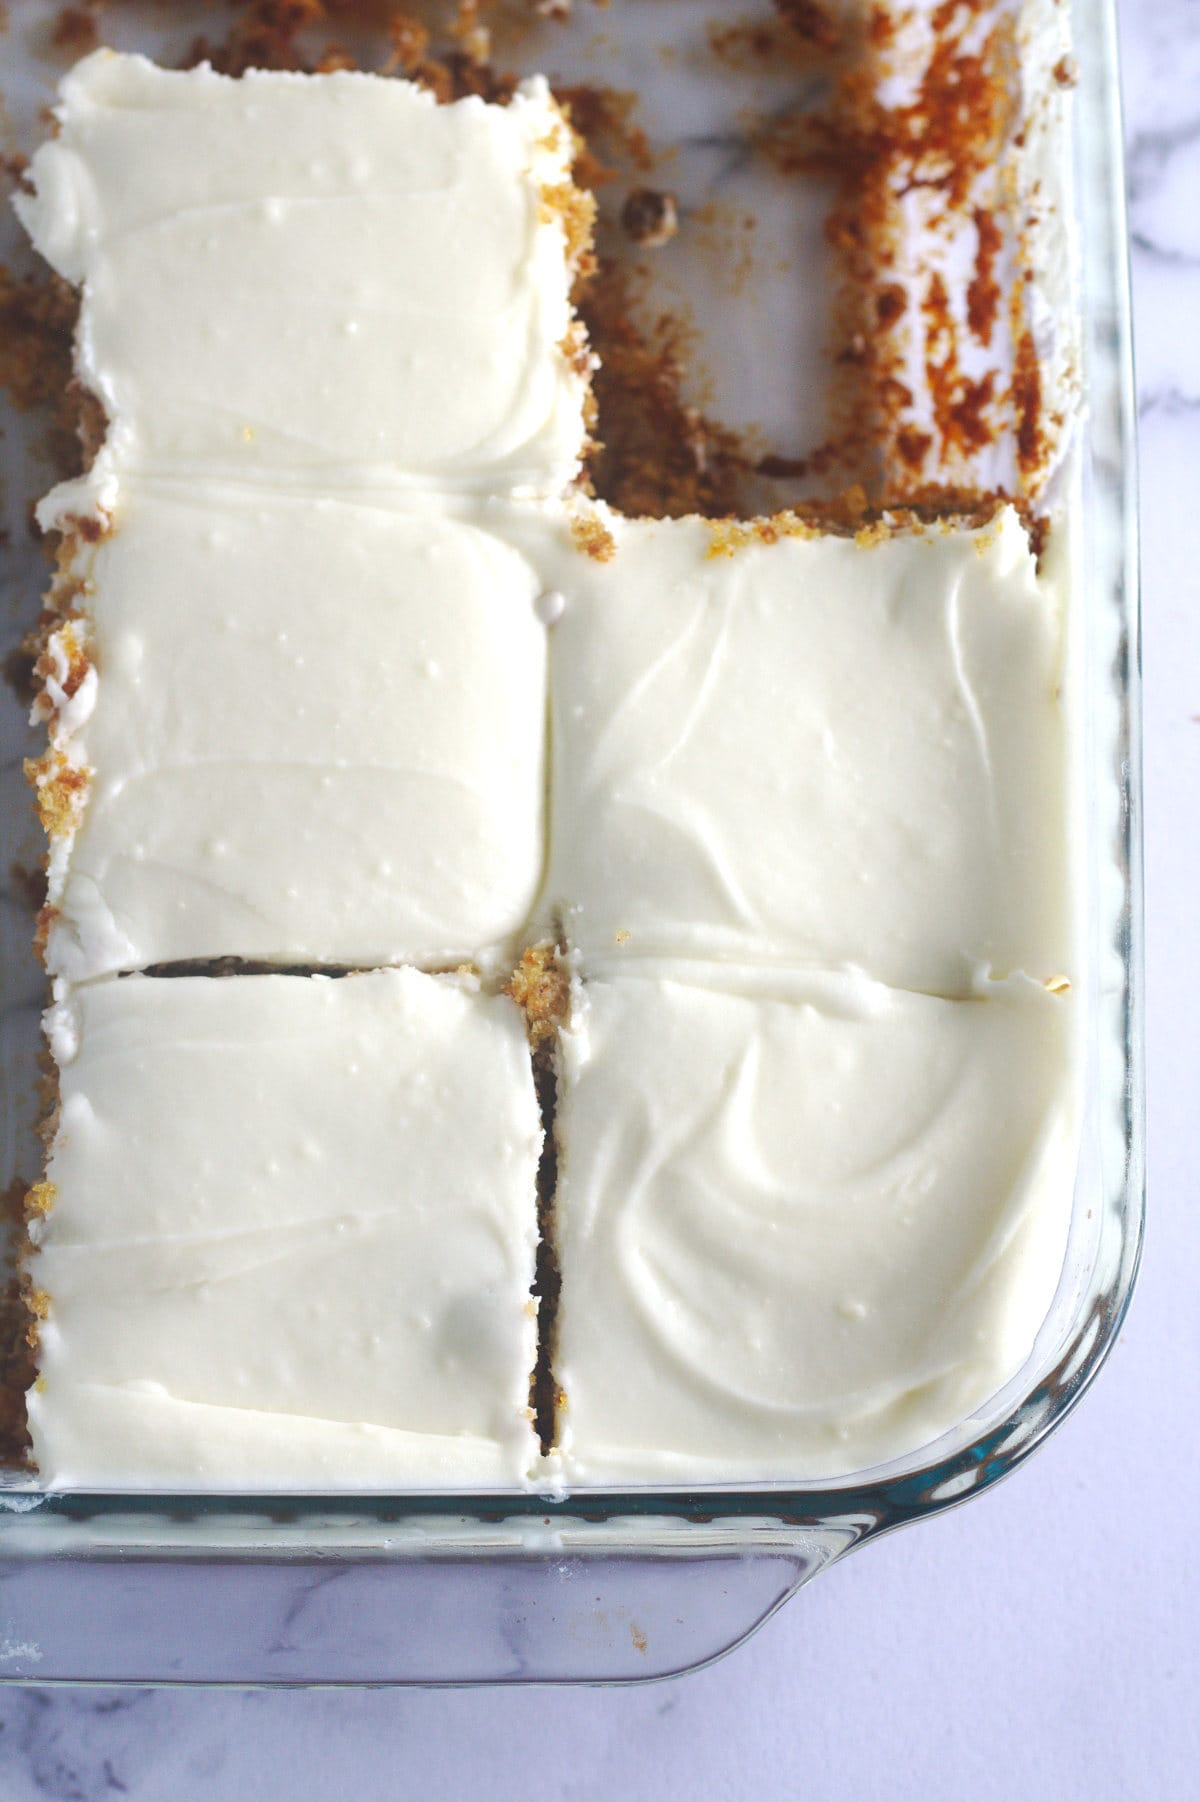 Cake cut into slices in a baking dish.